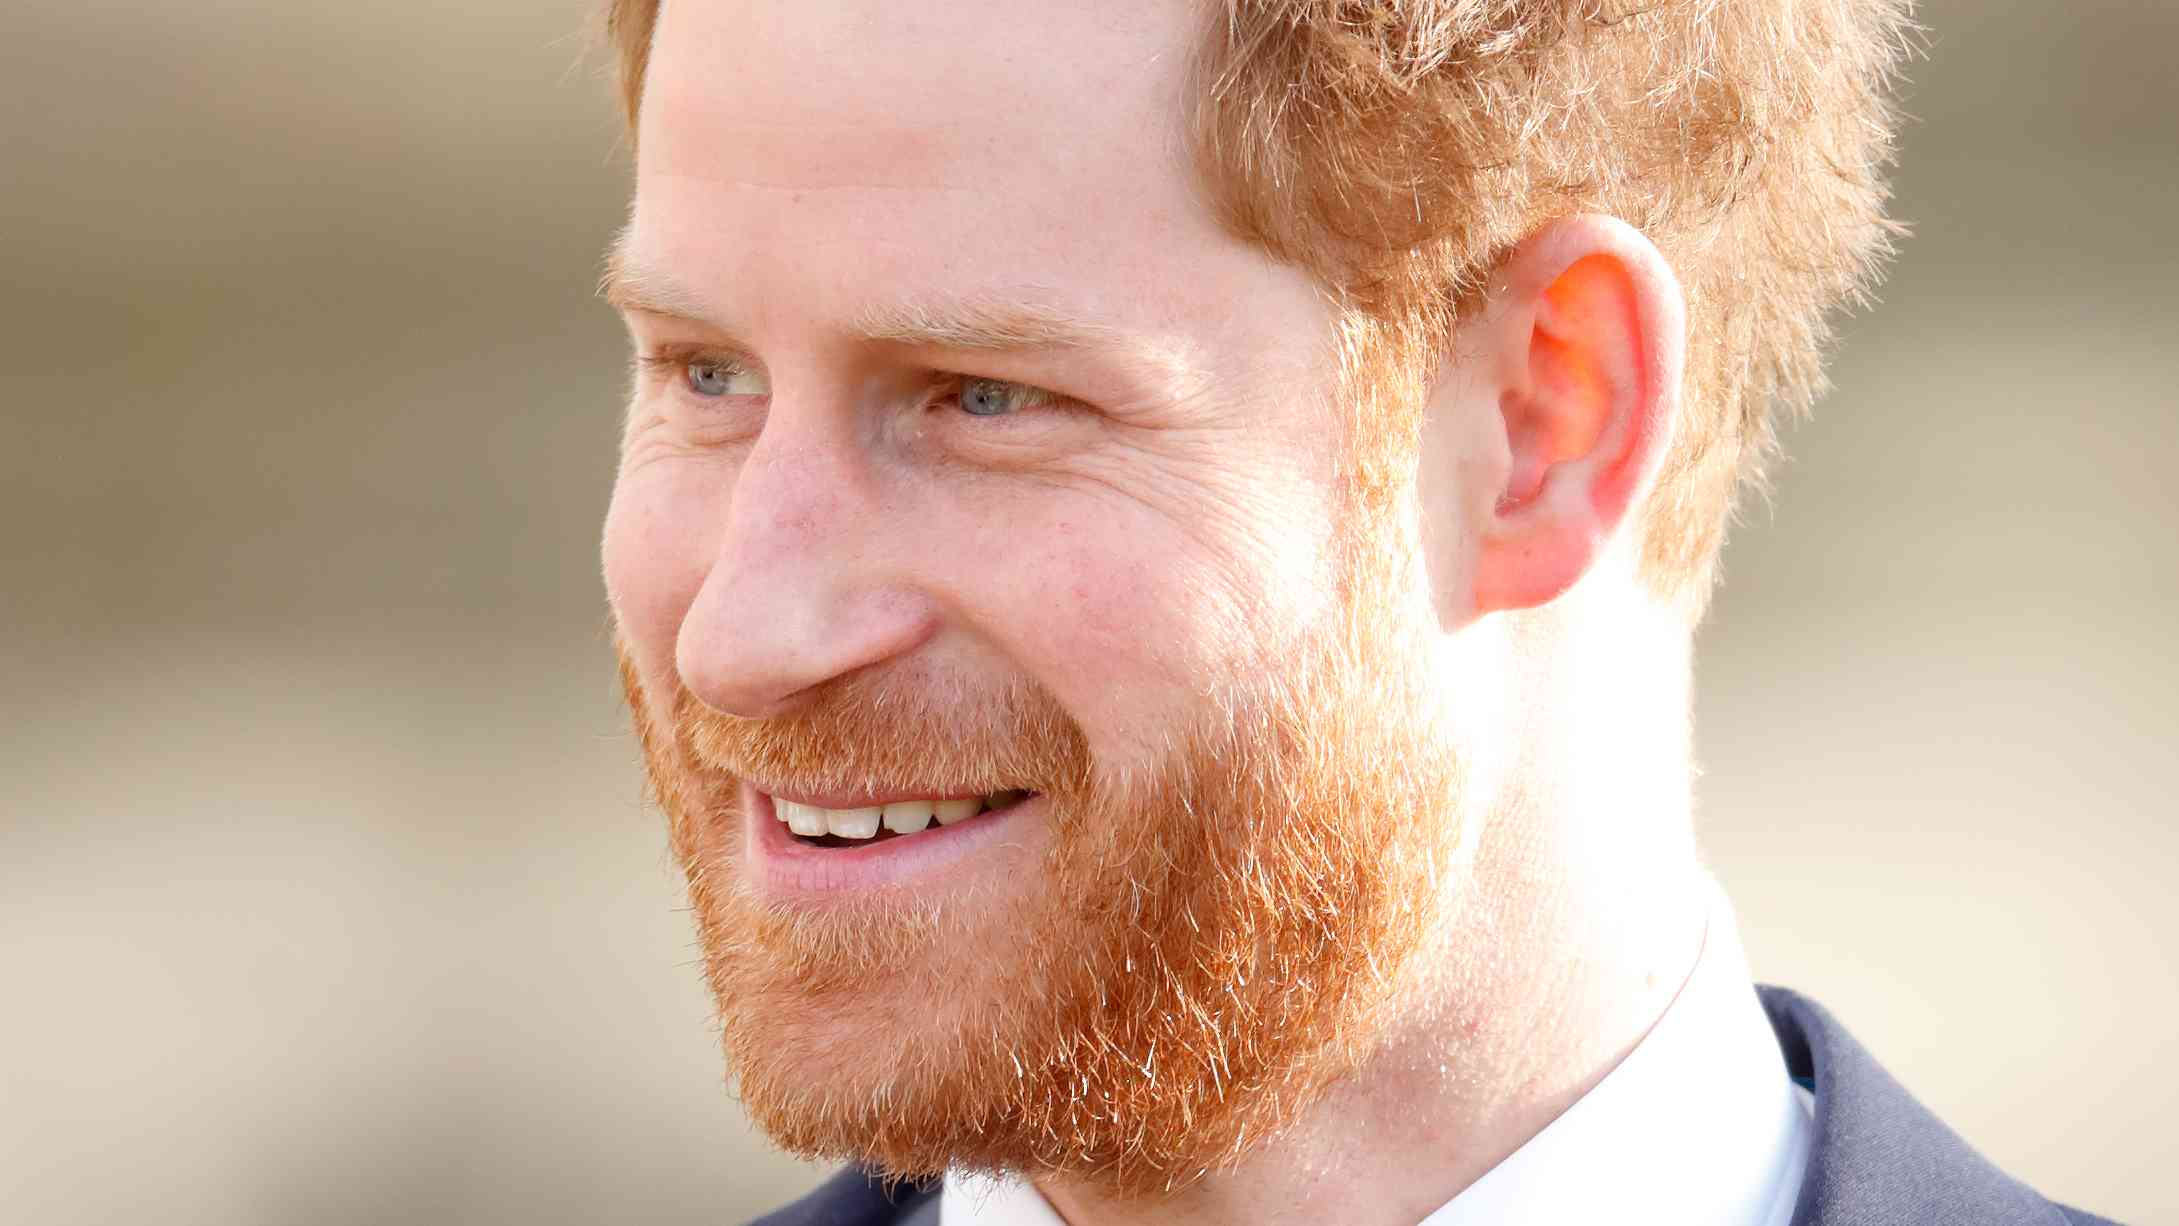 Prince Harry's final royal appearance: What happens next?